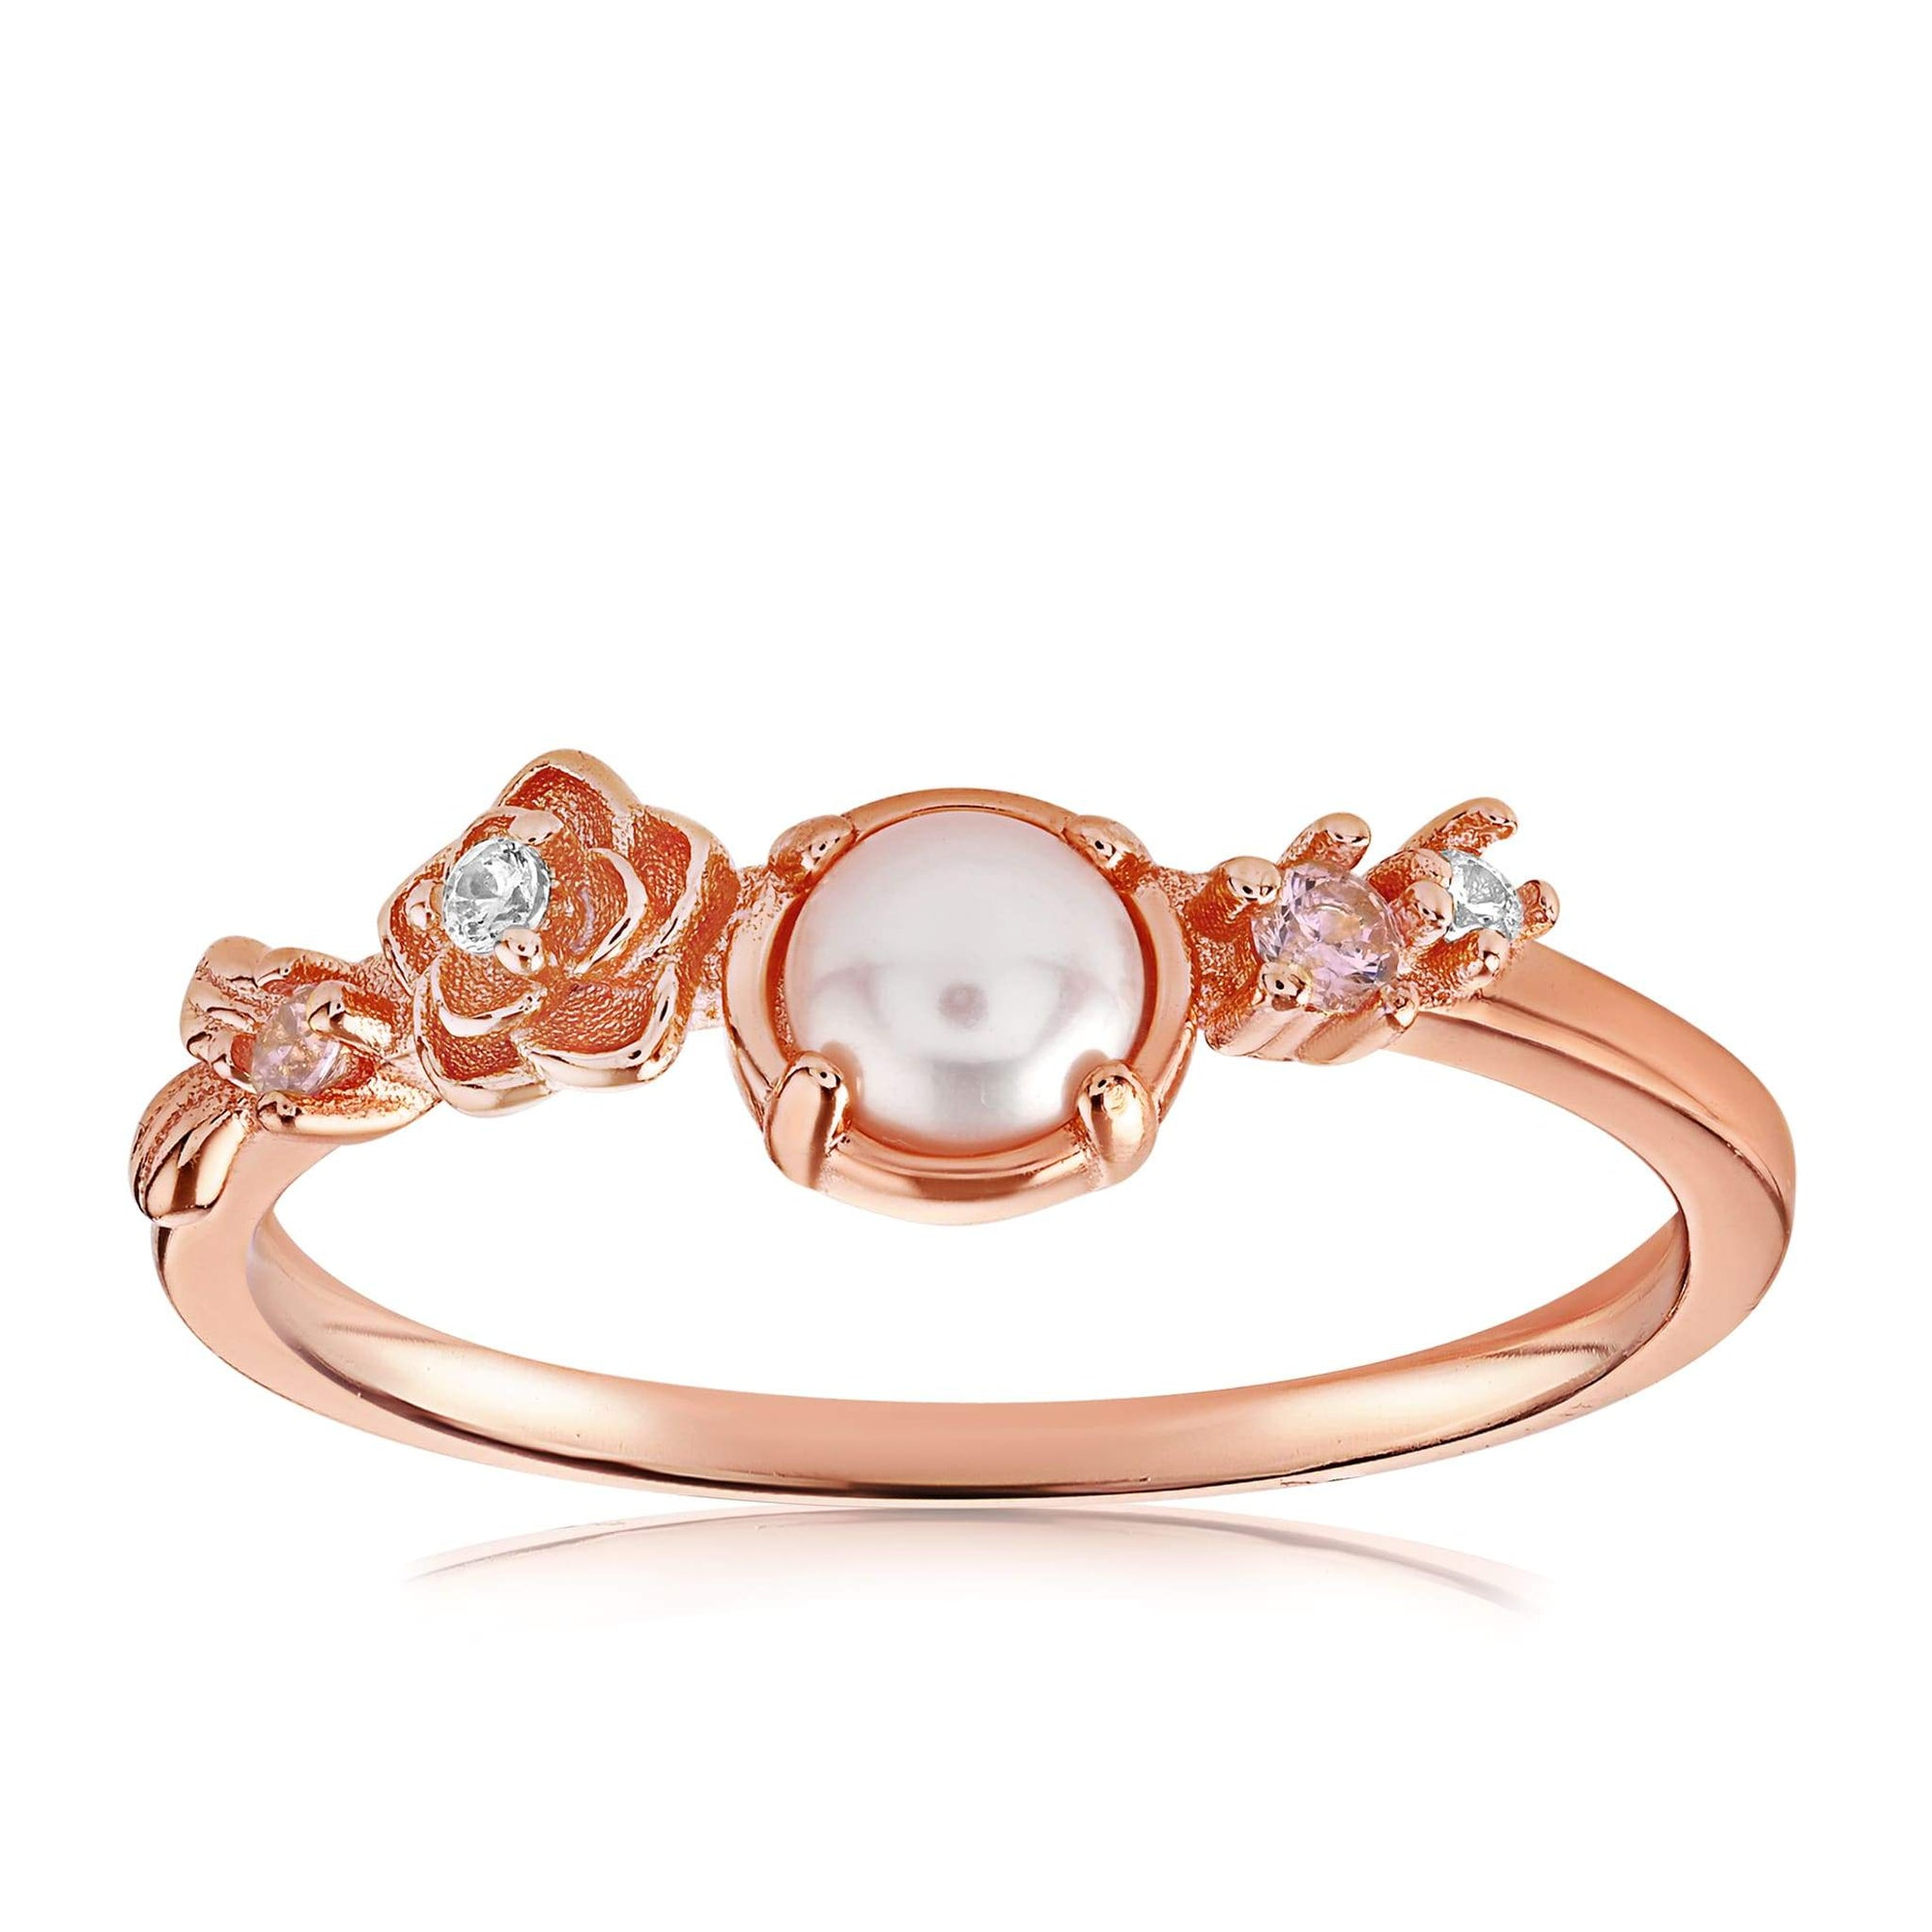 Grace Pearl Ring - Front View Facing Up - 18K Rose Gold Vermeil